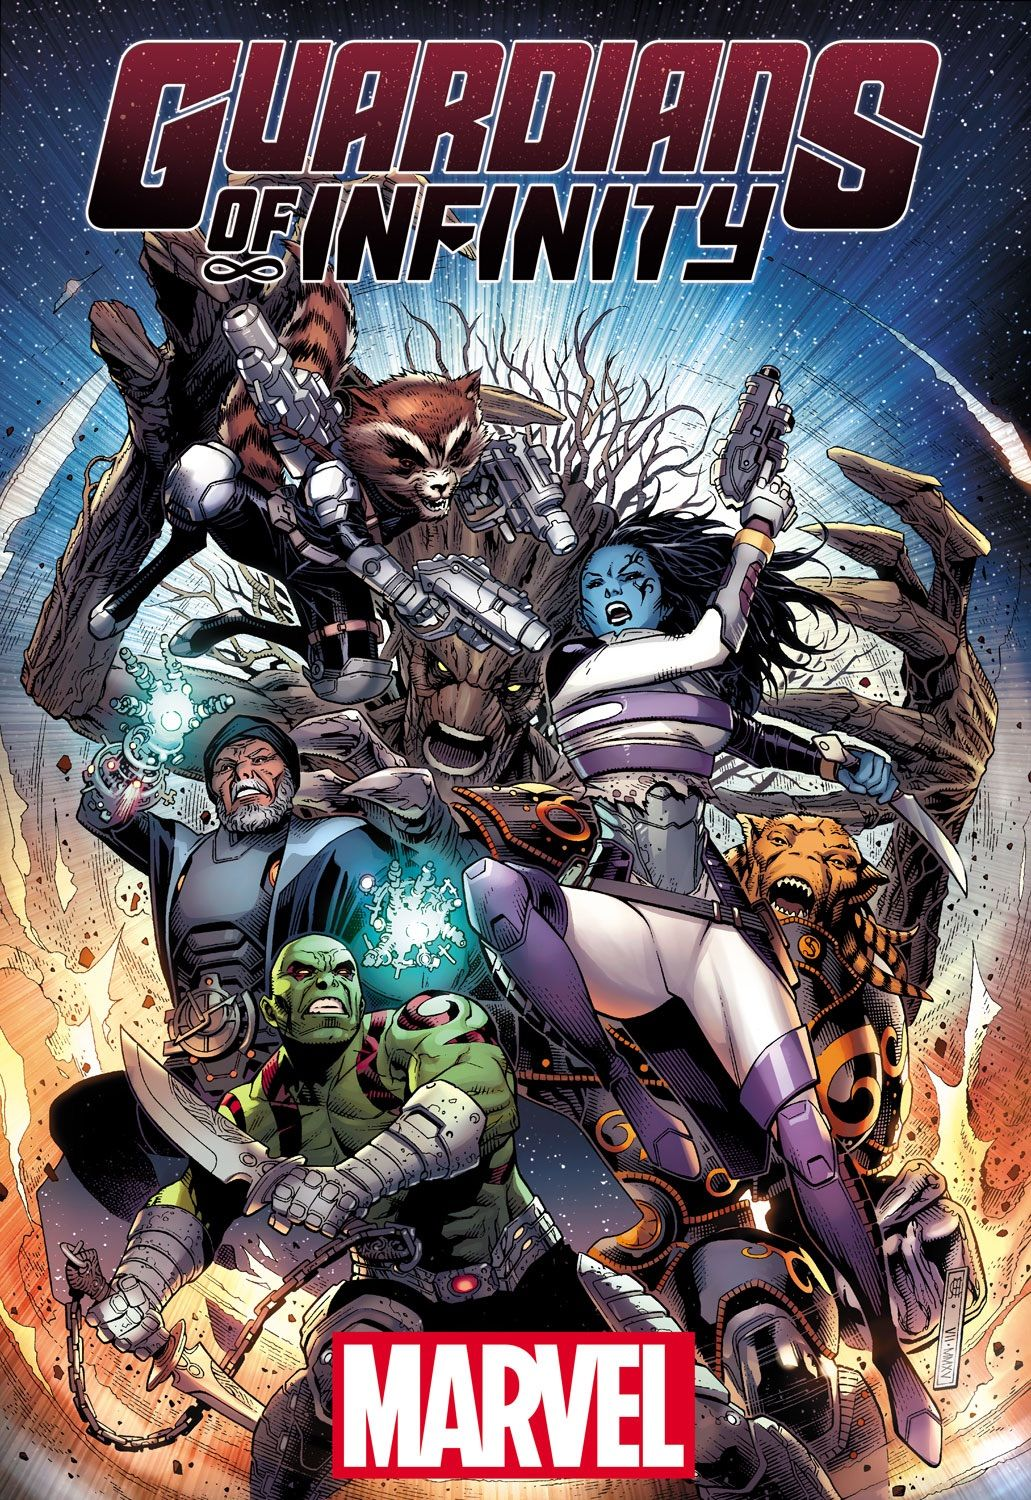 Generations Collide in Your New Look at GUARDIANS OF INFINITY #1!, This December, the infinite expanse of space and time will give way, and three eras of heroes will collide! Today, Marvel is pleased to present a look...,  #BennGrimm #CarloBarberi #DanAbnett #Drax #Groot #GuardiansofInfinity #GuardiansofInfinity#1 #guardiansofthegalaxy #JasonLatour #JimCheung #MarcoRudy #Marvel #MarvelComics #News #PressRelease #RocketRaccoon #RonLim